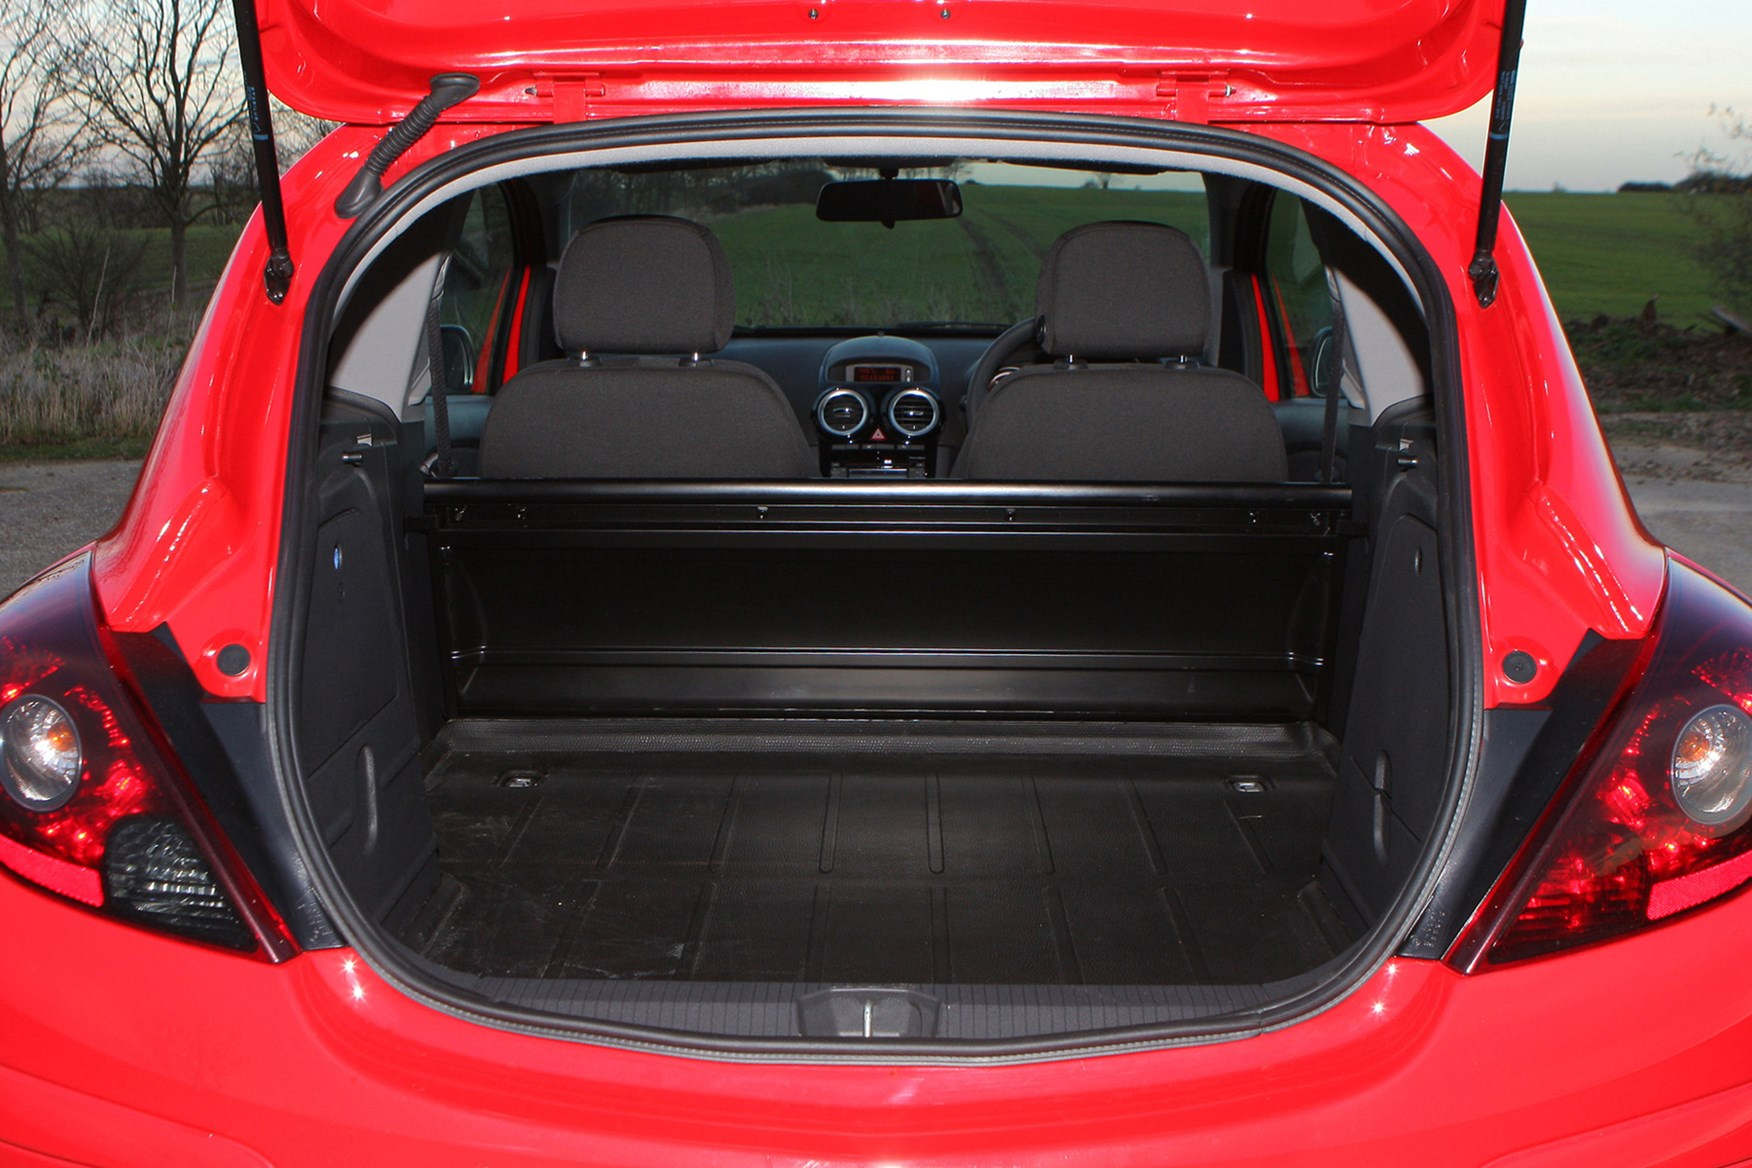 Vauxhall Corsa review on Parkers Vans - load area